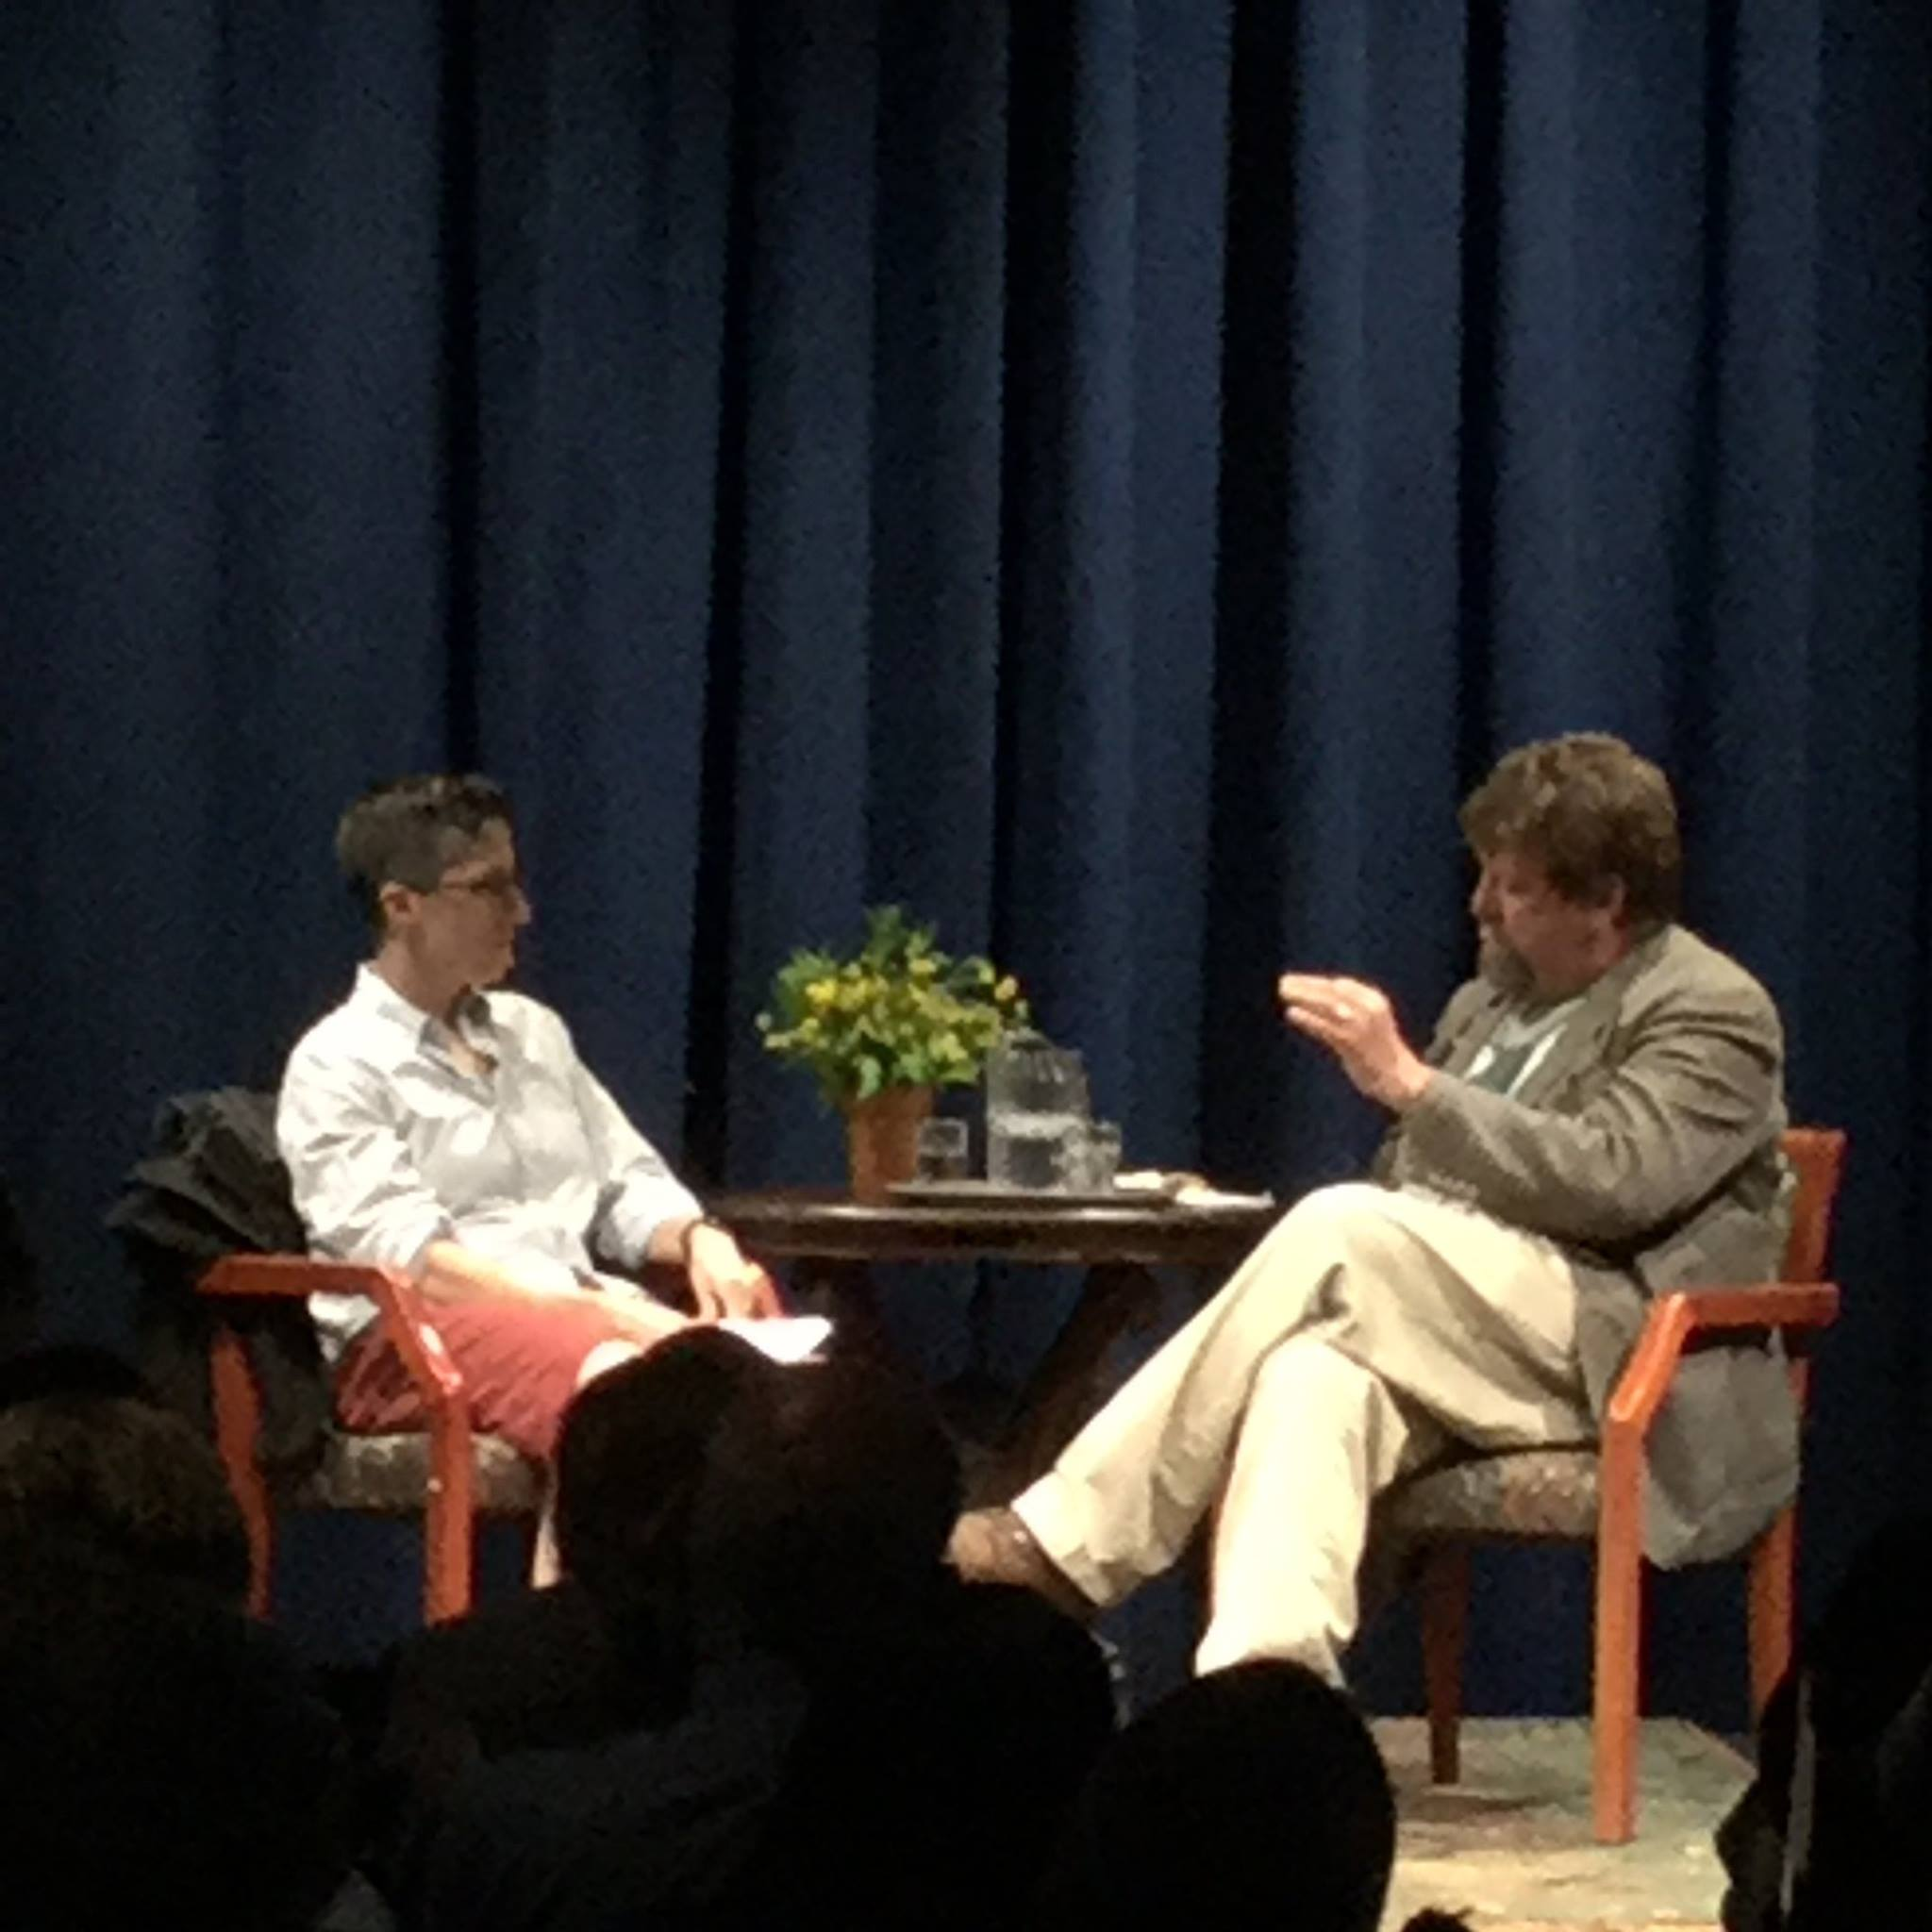 The Drew Lecture: Author Alison Bechdel in conversation with Oskar Eustis, Artistic Director of The Public Theatre & Bread Loaf Faculty Member